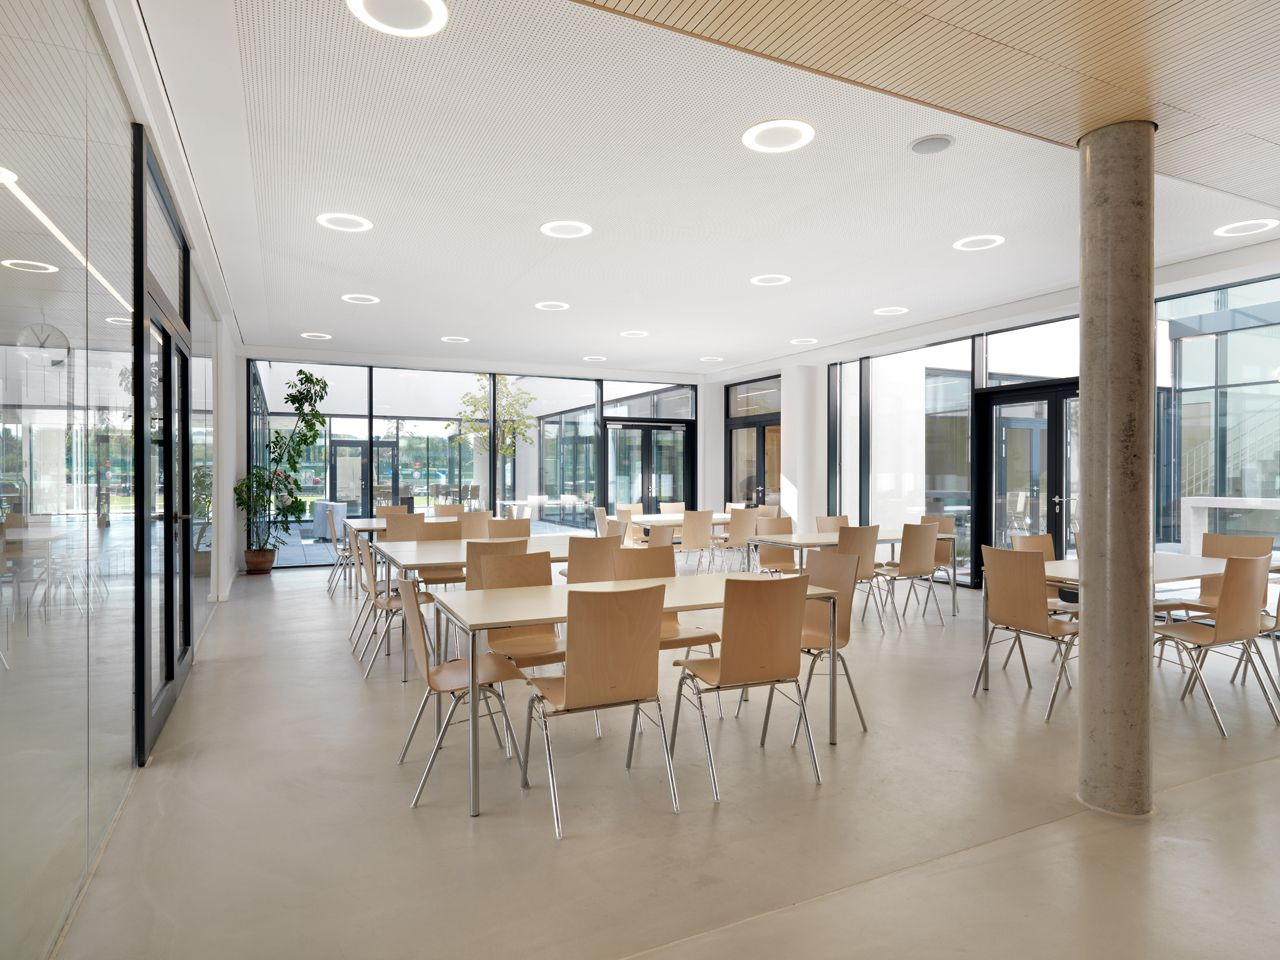 School Dining Hall  Google Search  Studio Westlake High School Alluring School Dining Room Review